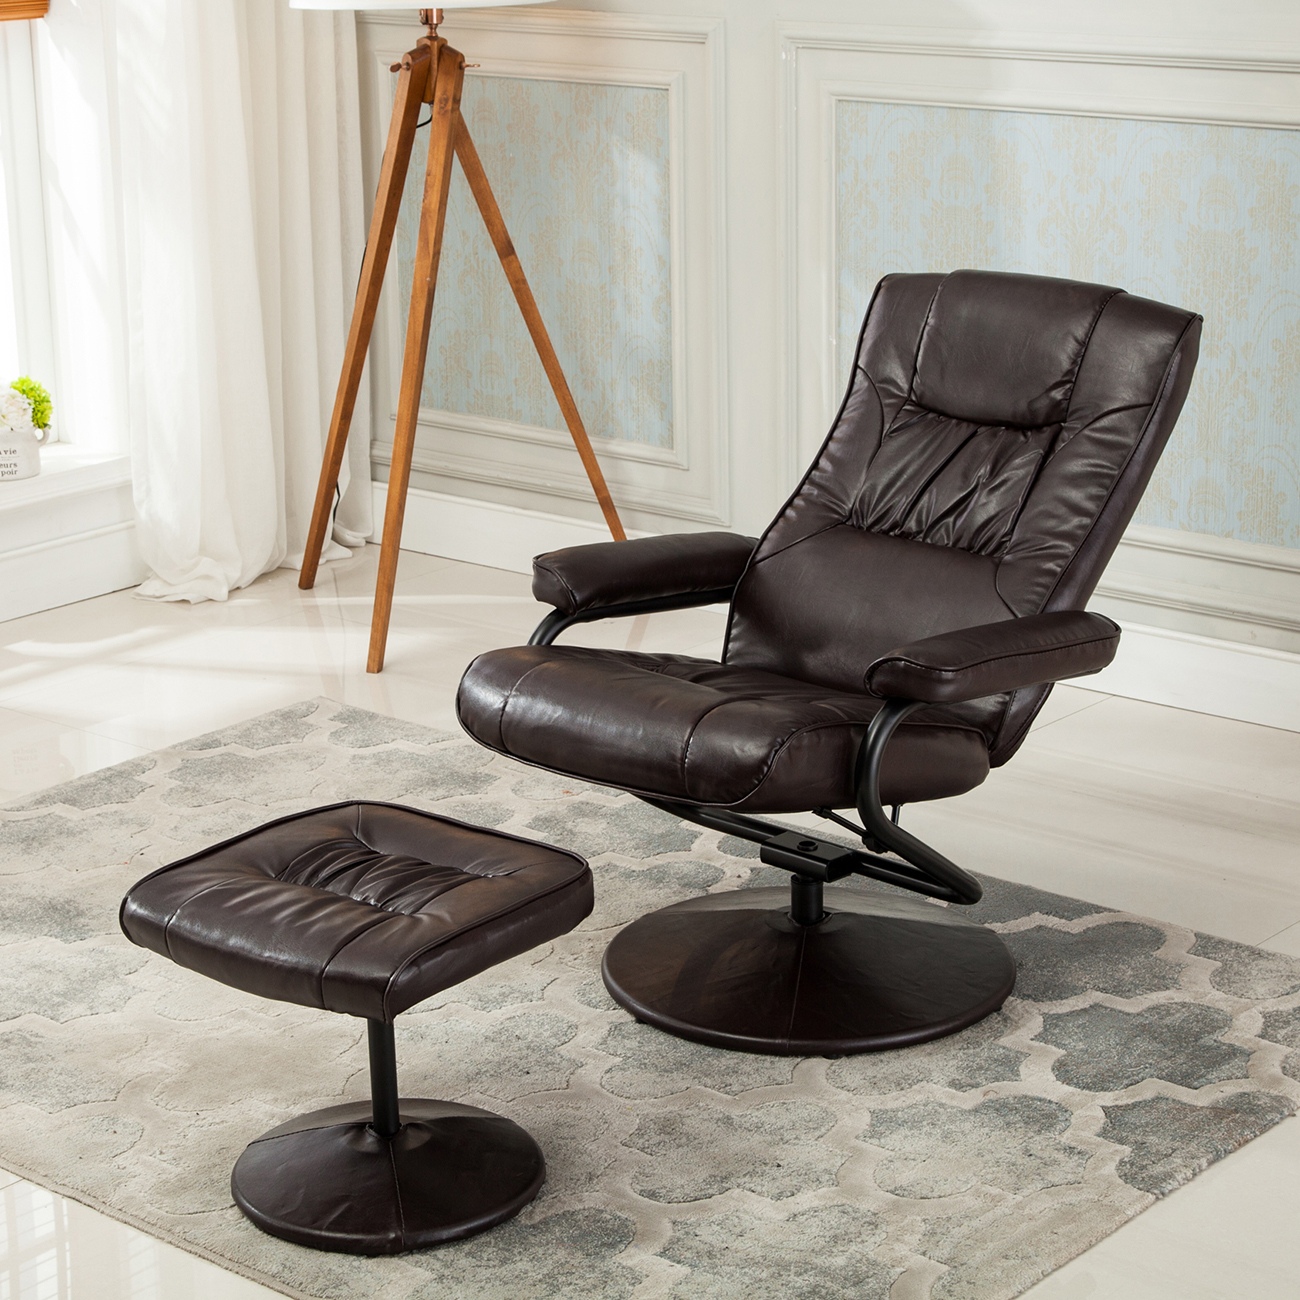 Leather Swivel Recliner Chairs Recliner Chair Swivel Armchair Lounge Seat W Footrest